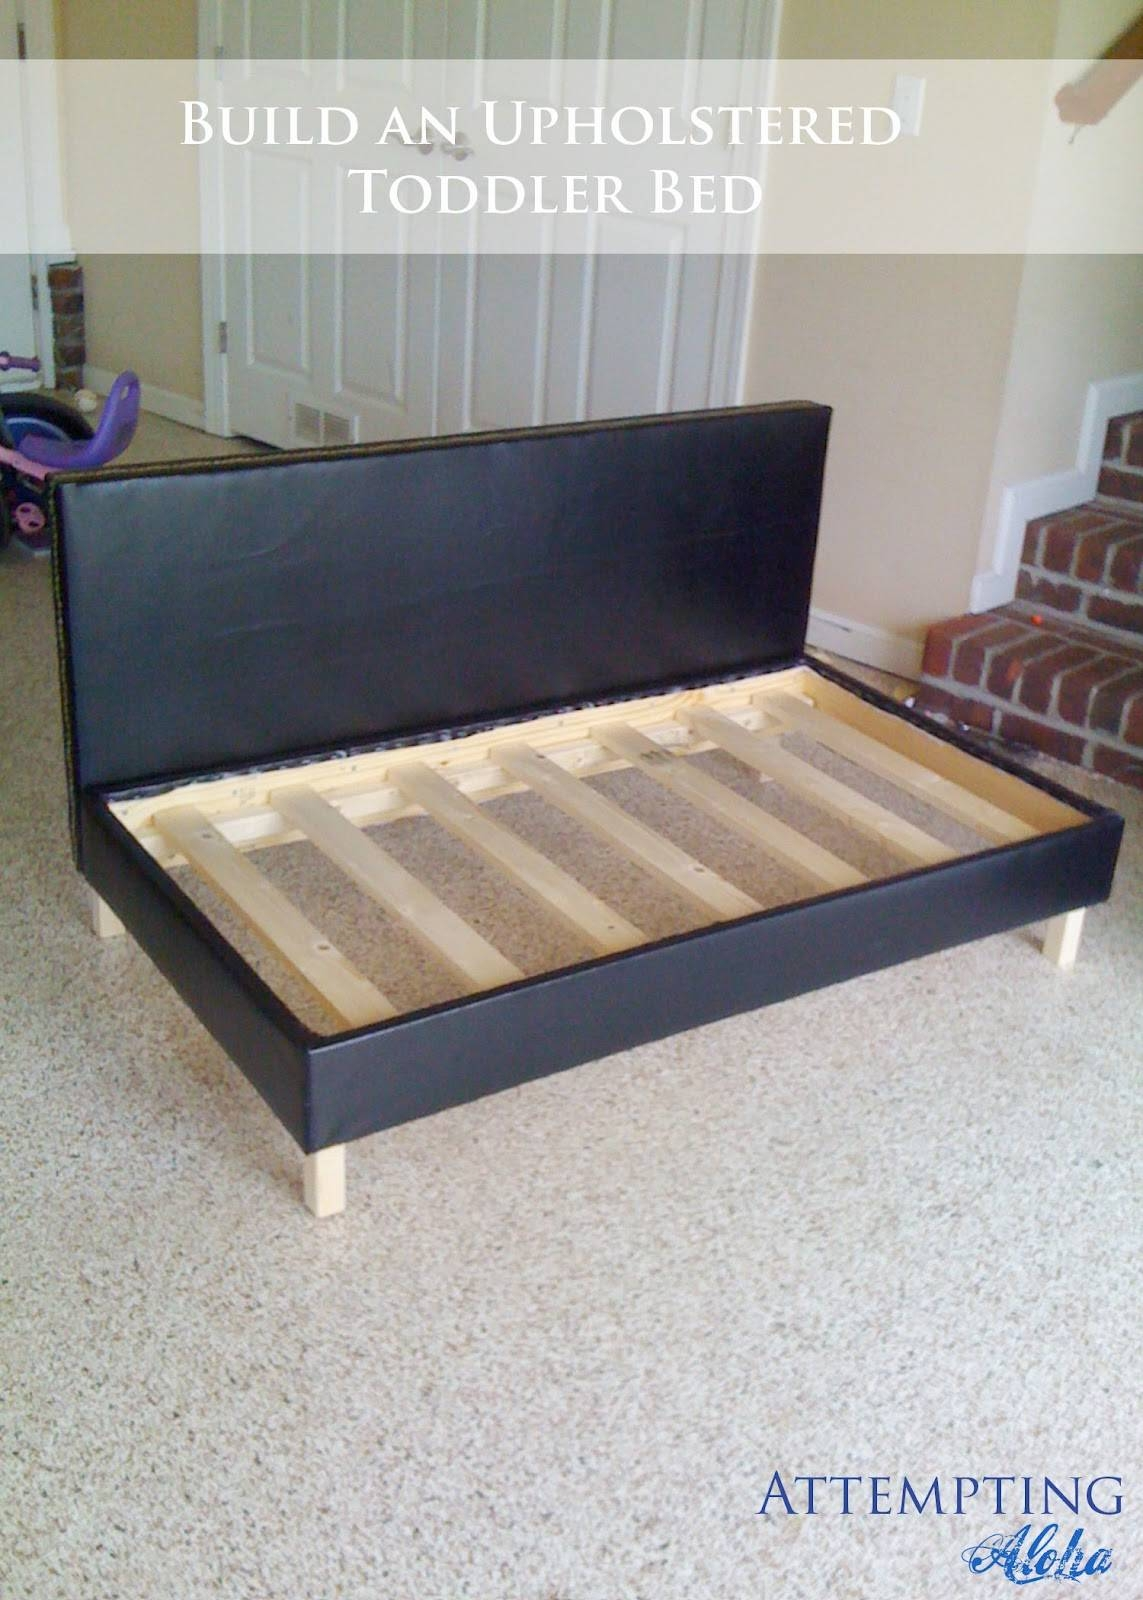 Diy Sectional Sofa Frame Plans - Tourdecarroll within Diy Sleeper Sofa (Image 11 of 30)